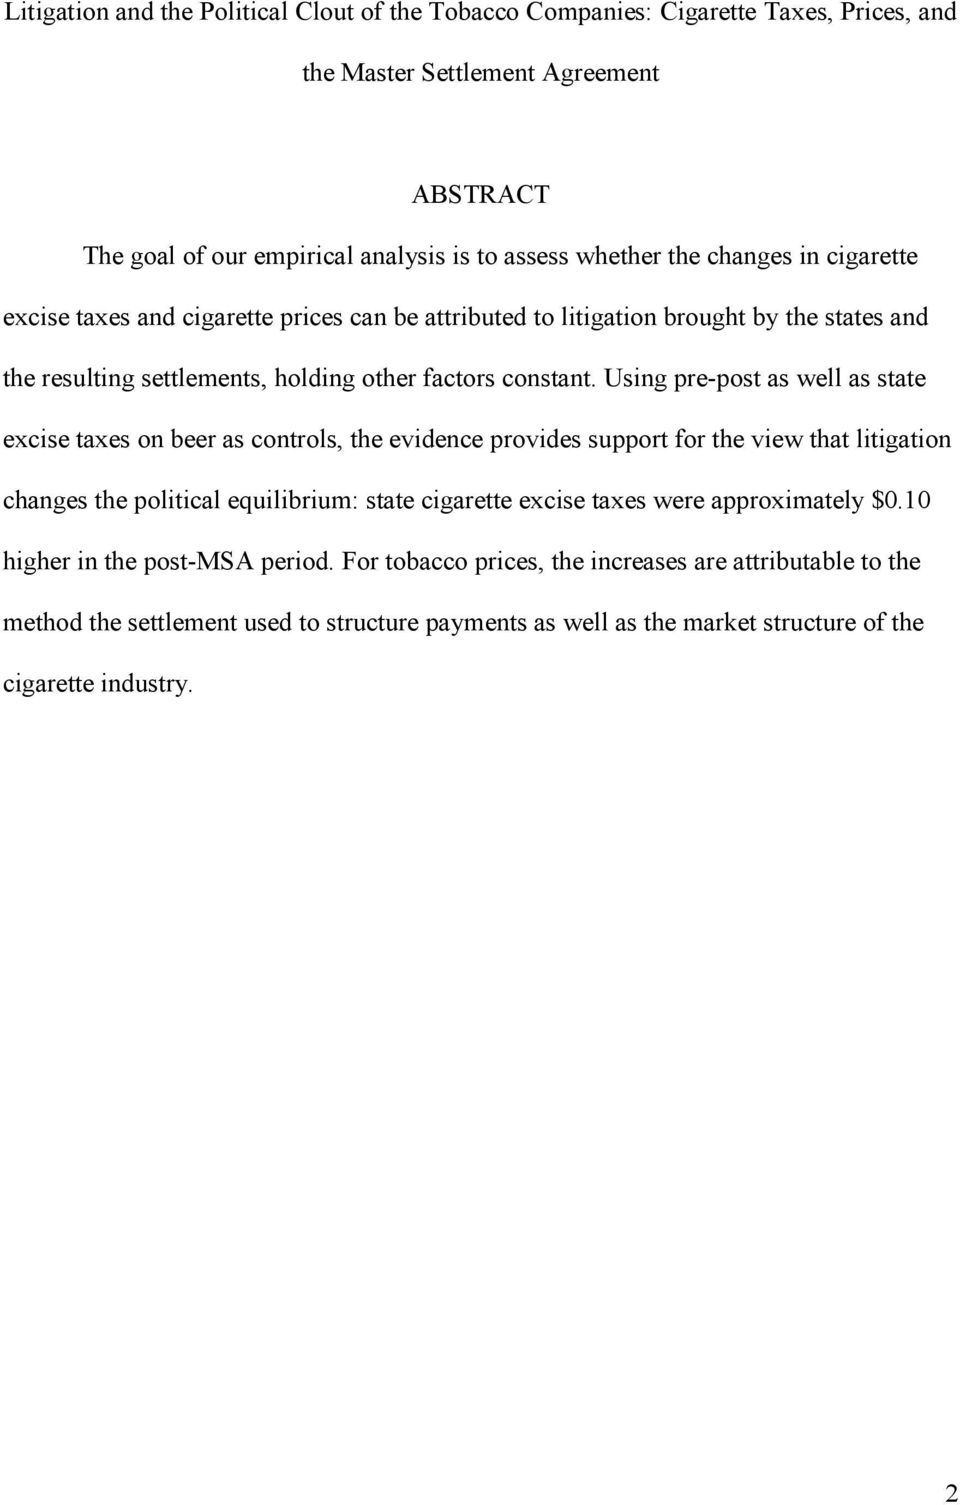 Litigation And The Political Clout Of The Tobacco Companies